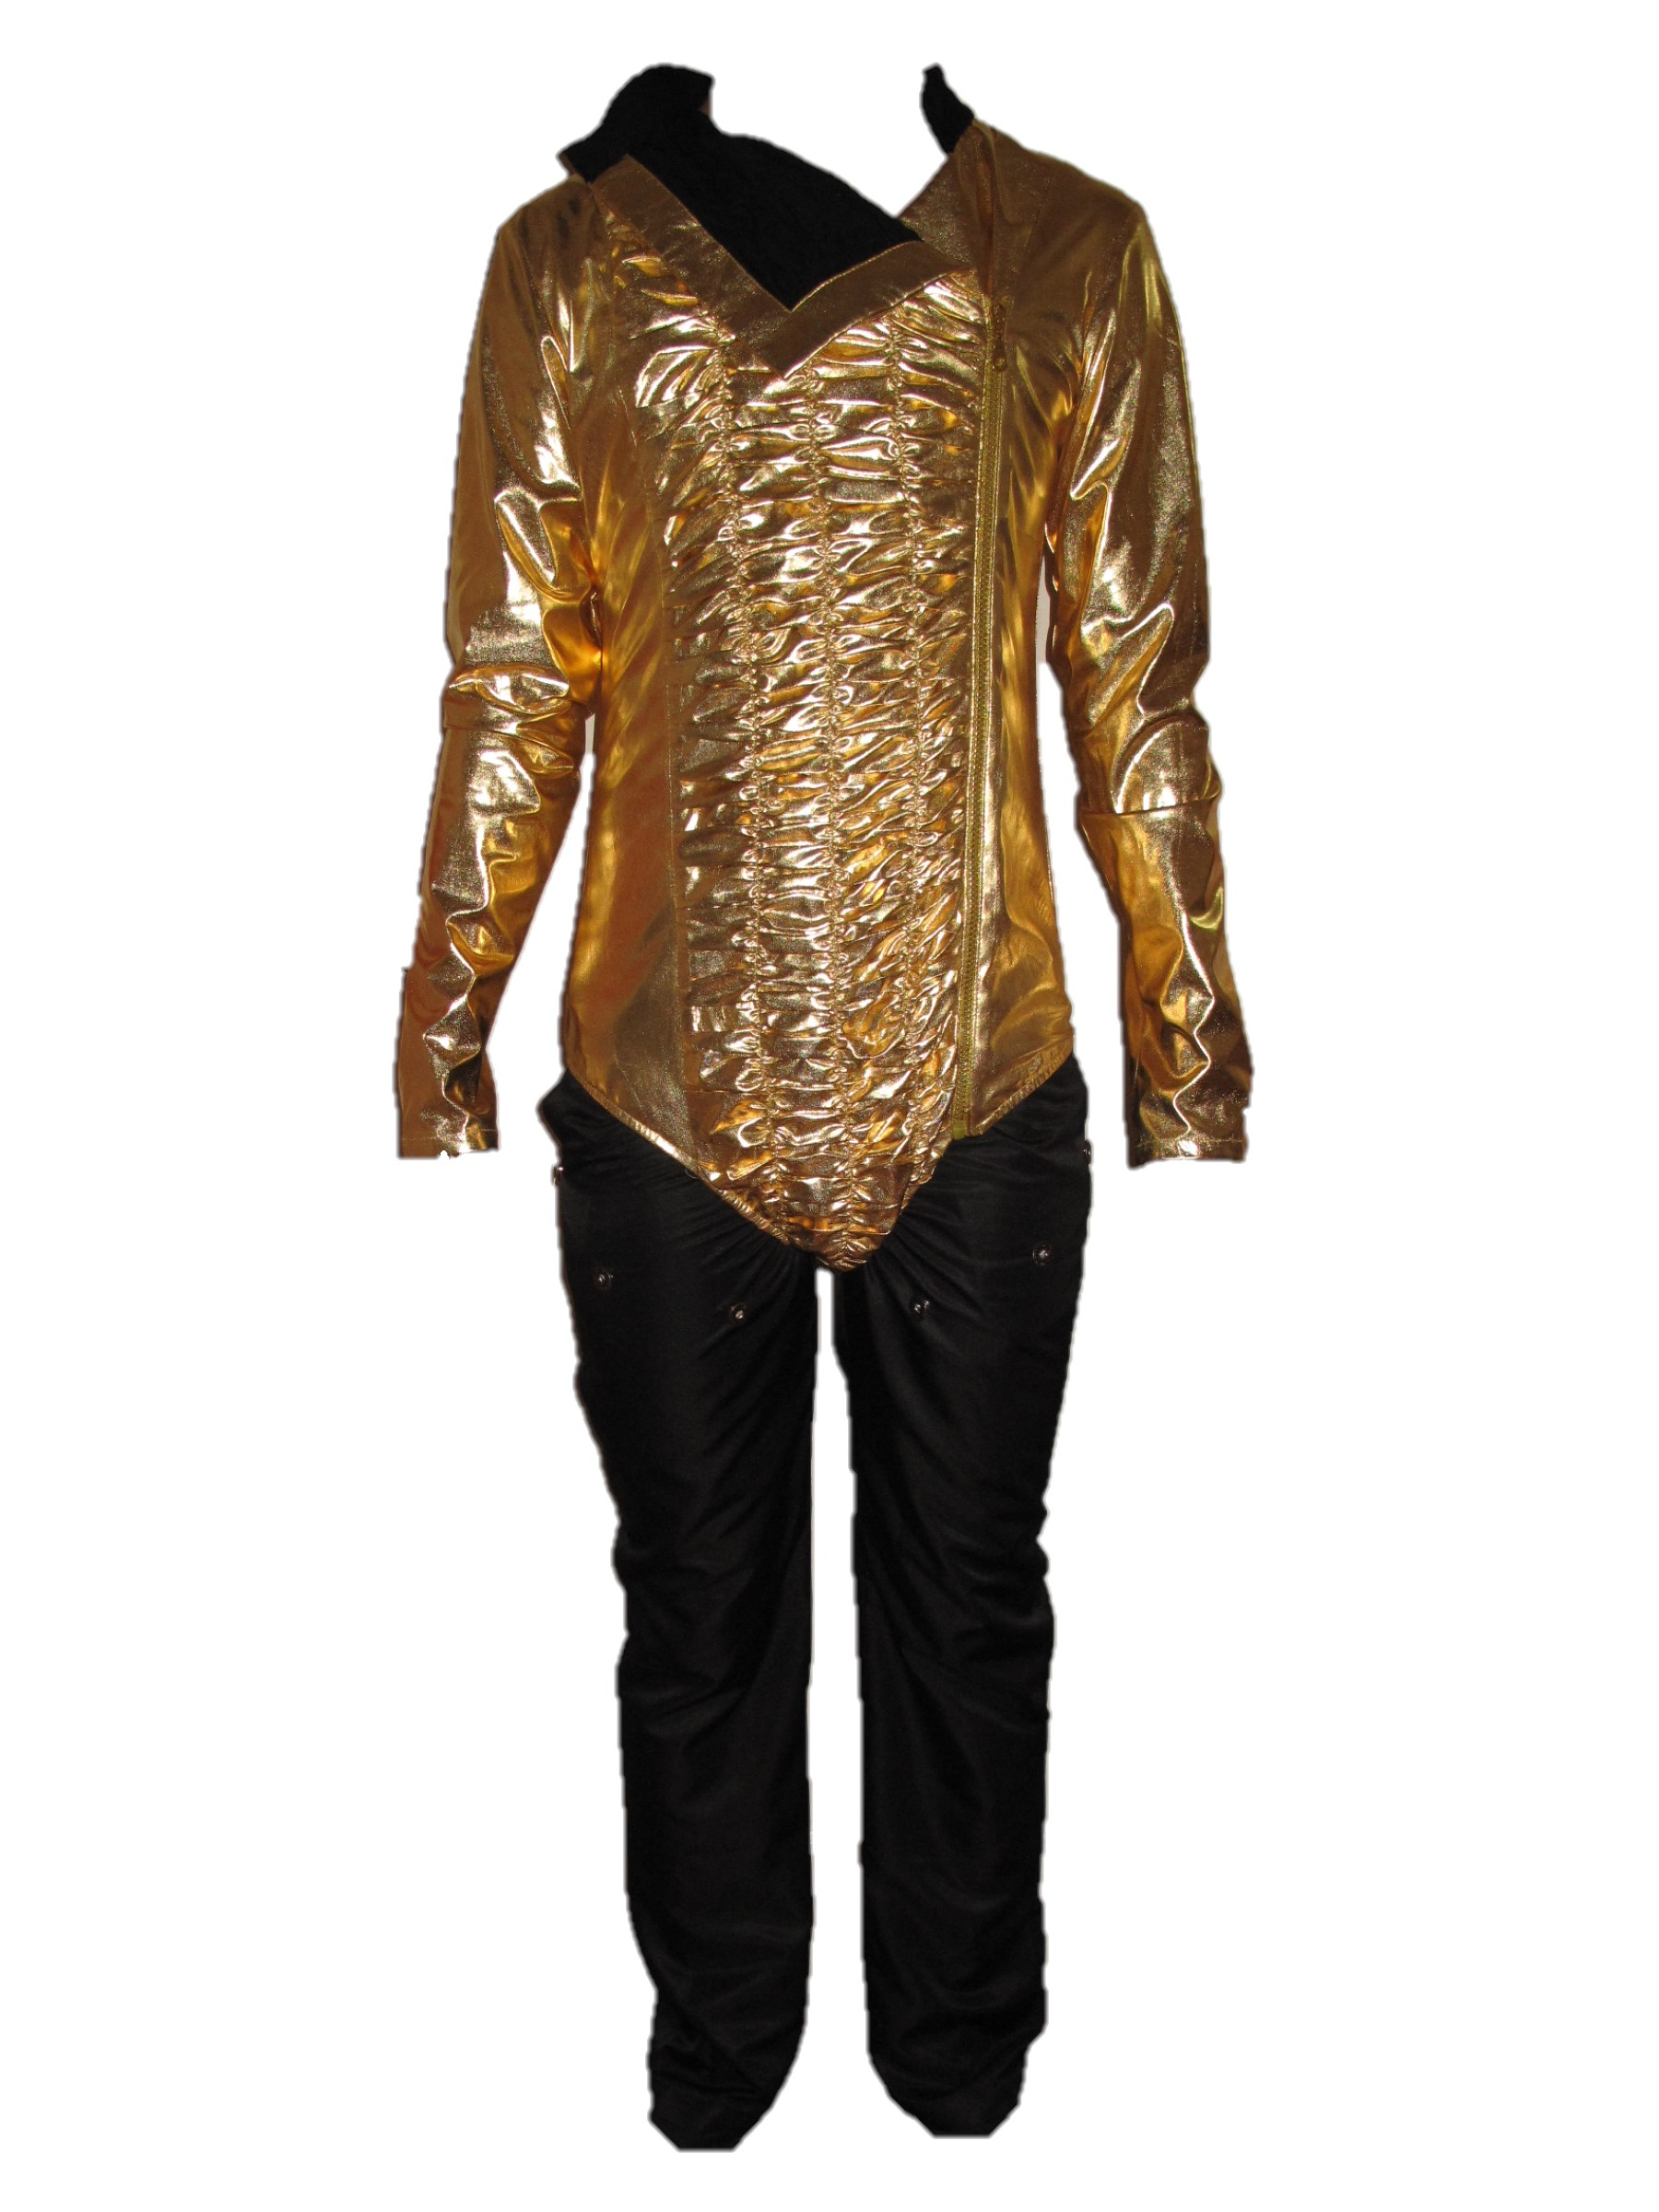 Michael Jackson Dangerous Tour Leotard Black Pants